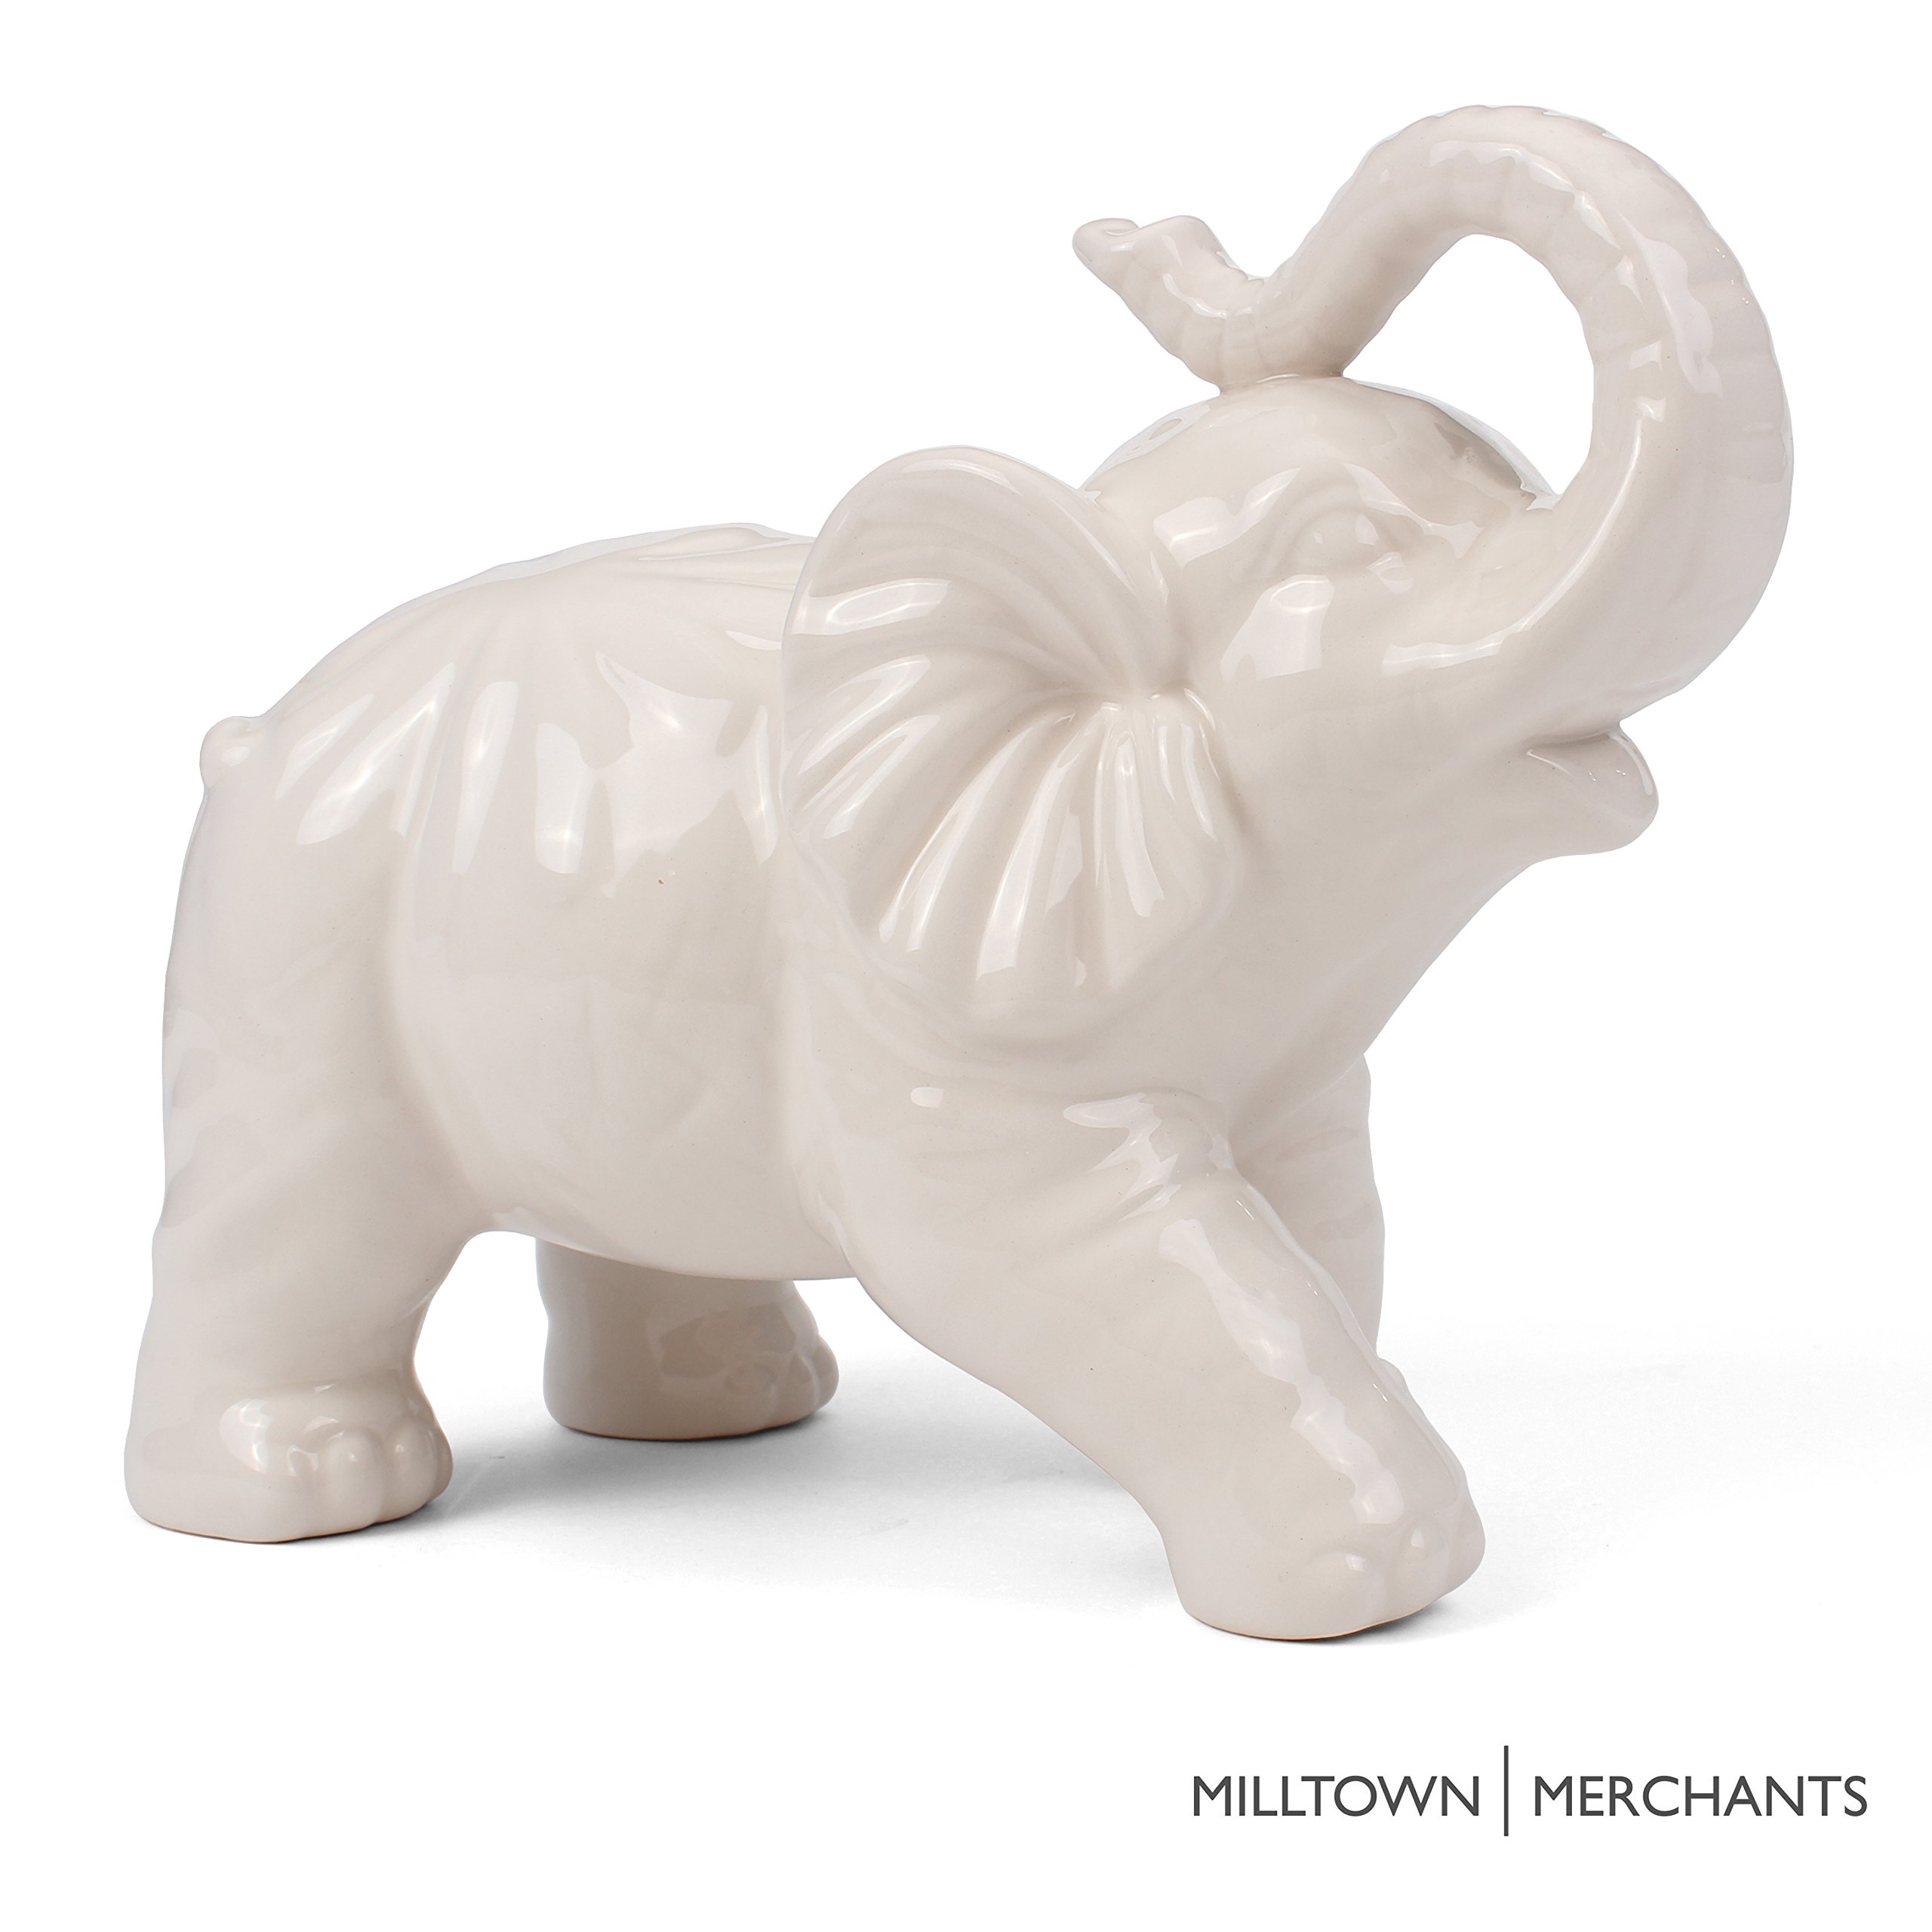 Perfect Milltown Merchants Trade; Elephant Figurine   Ceramic Elephant   Elephant  Decor   White Ceramic Elephant